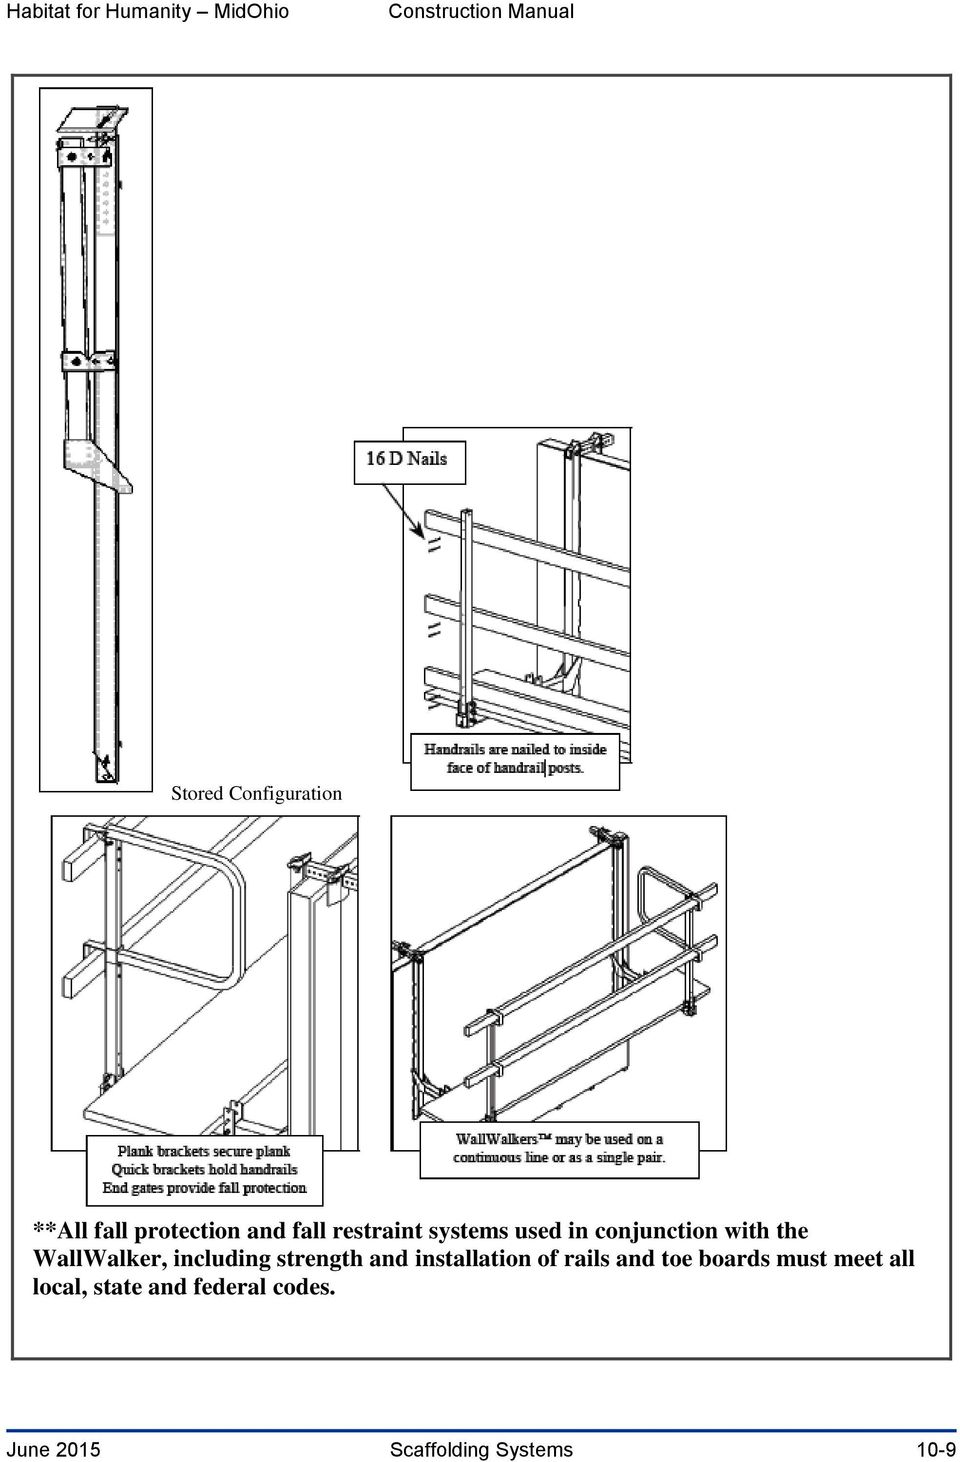 strength and installation of rails and toe boards must meet